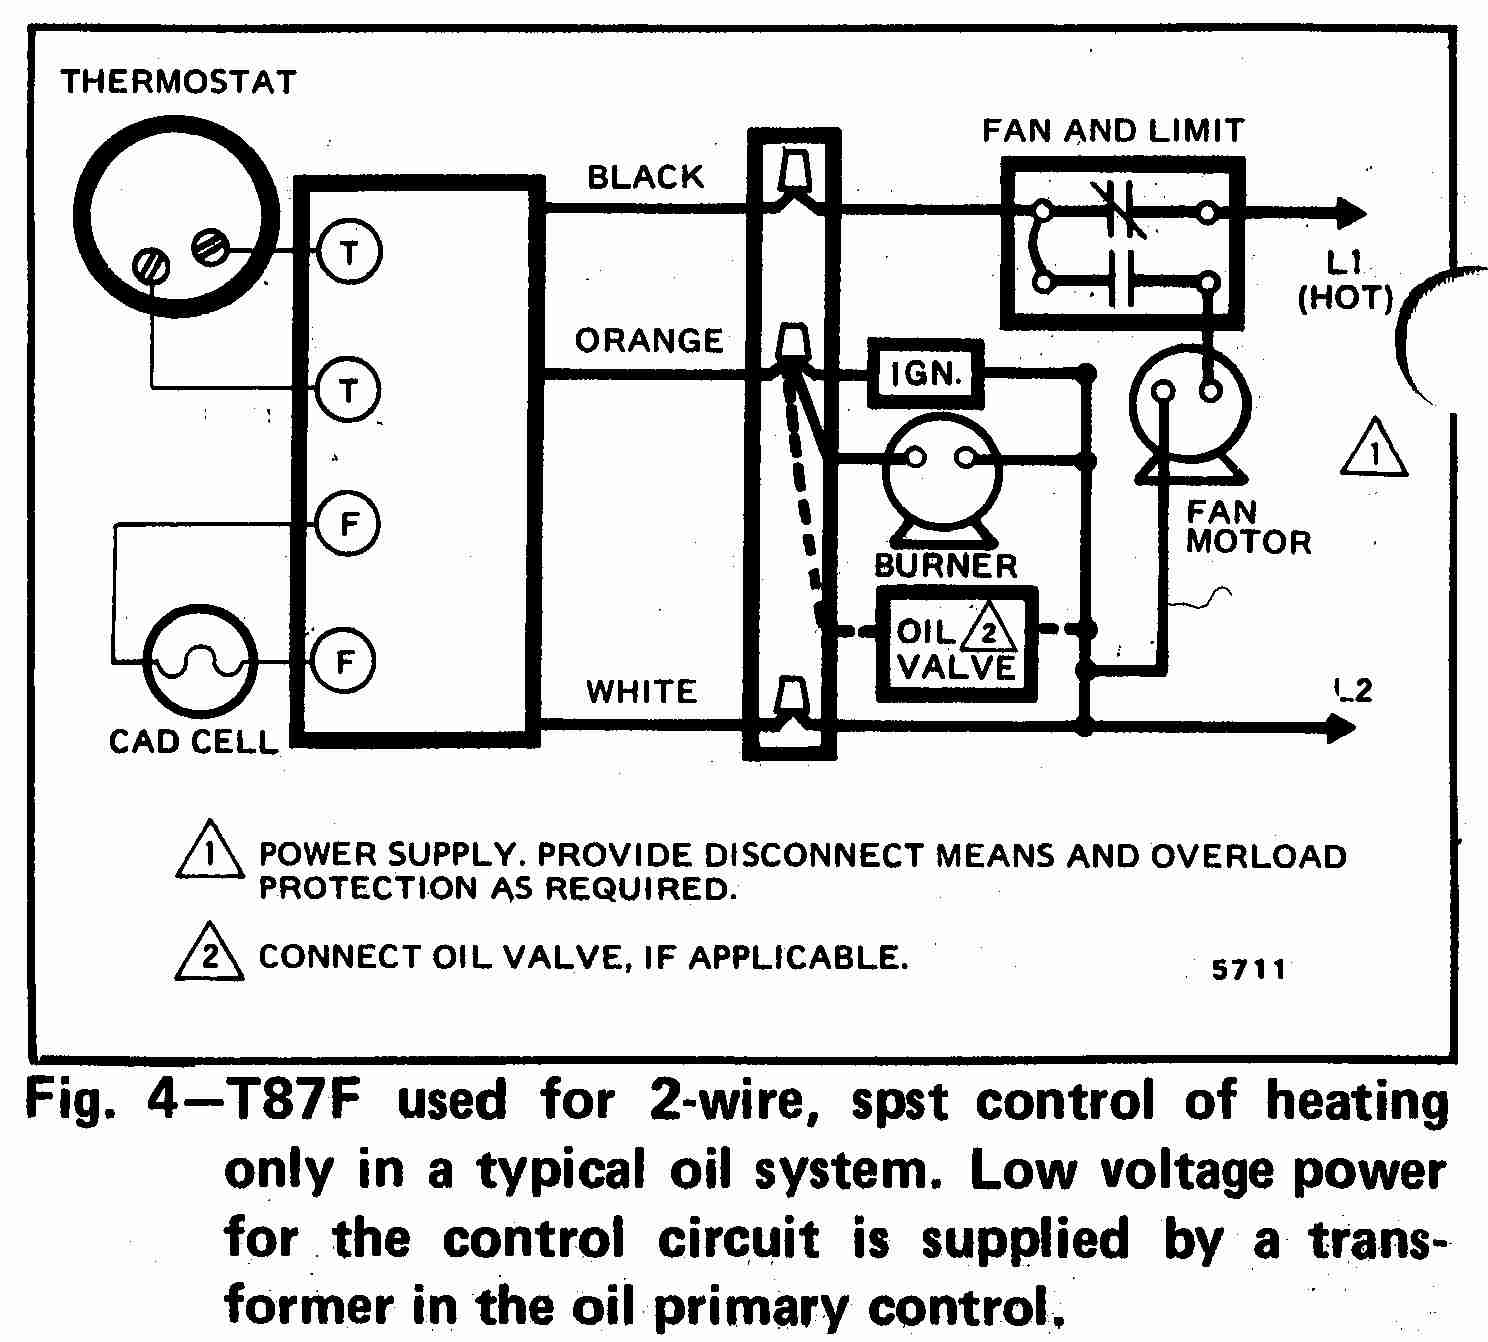 [SCHEMATICS_48IS]  0BE9E65 Portable Space Heater Wiring Diagram | Wiring Library | Delonghi Oil Heater Wiring Diagram |  | Wiring Library